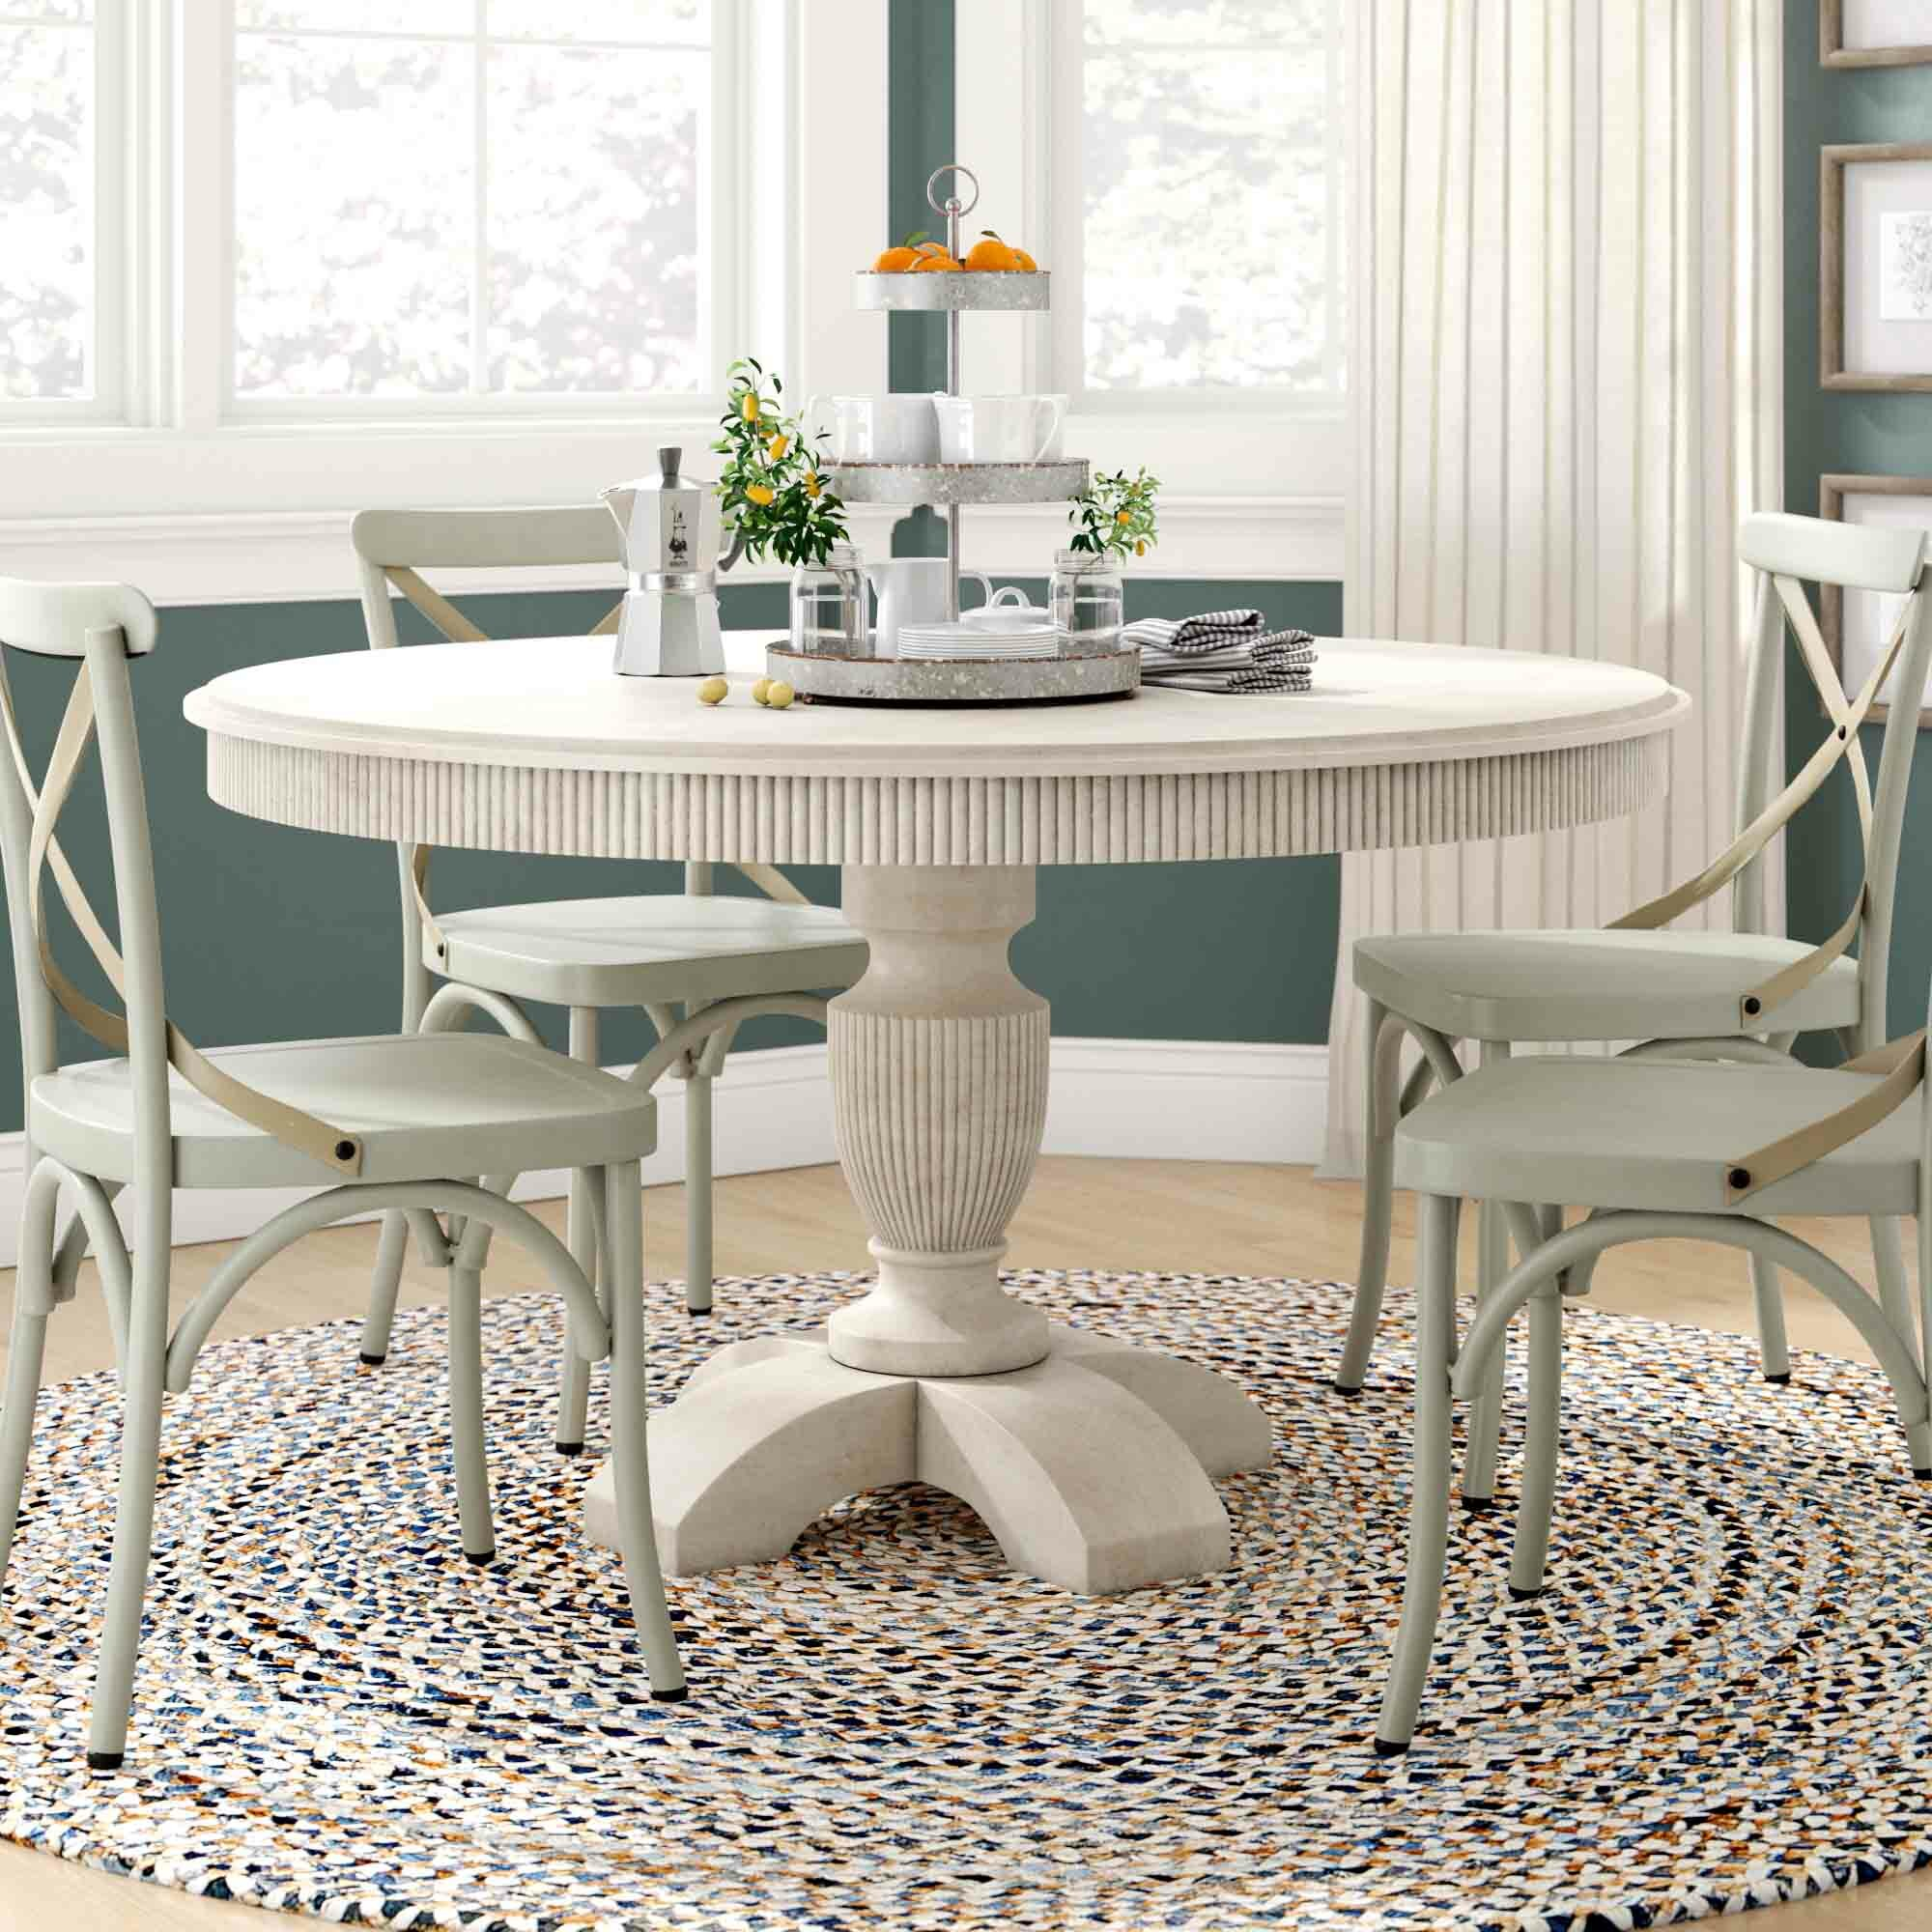 Distressed Finish White Wood Kitchen Dining Tables You Ll Love In 2021 Wayfair